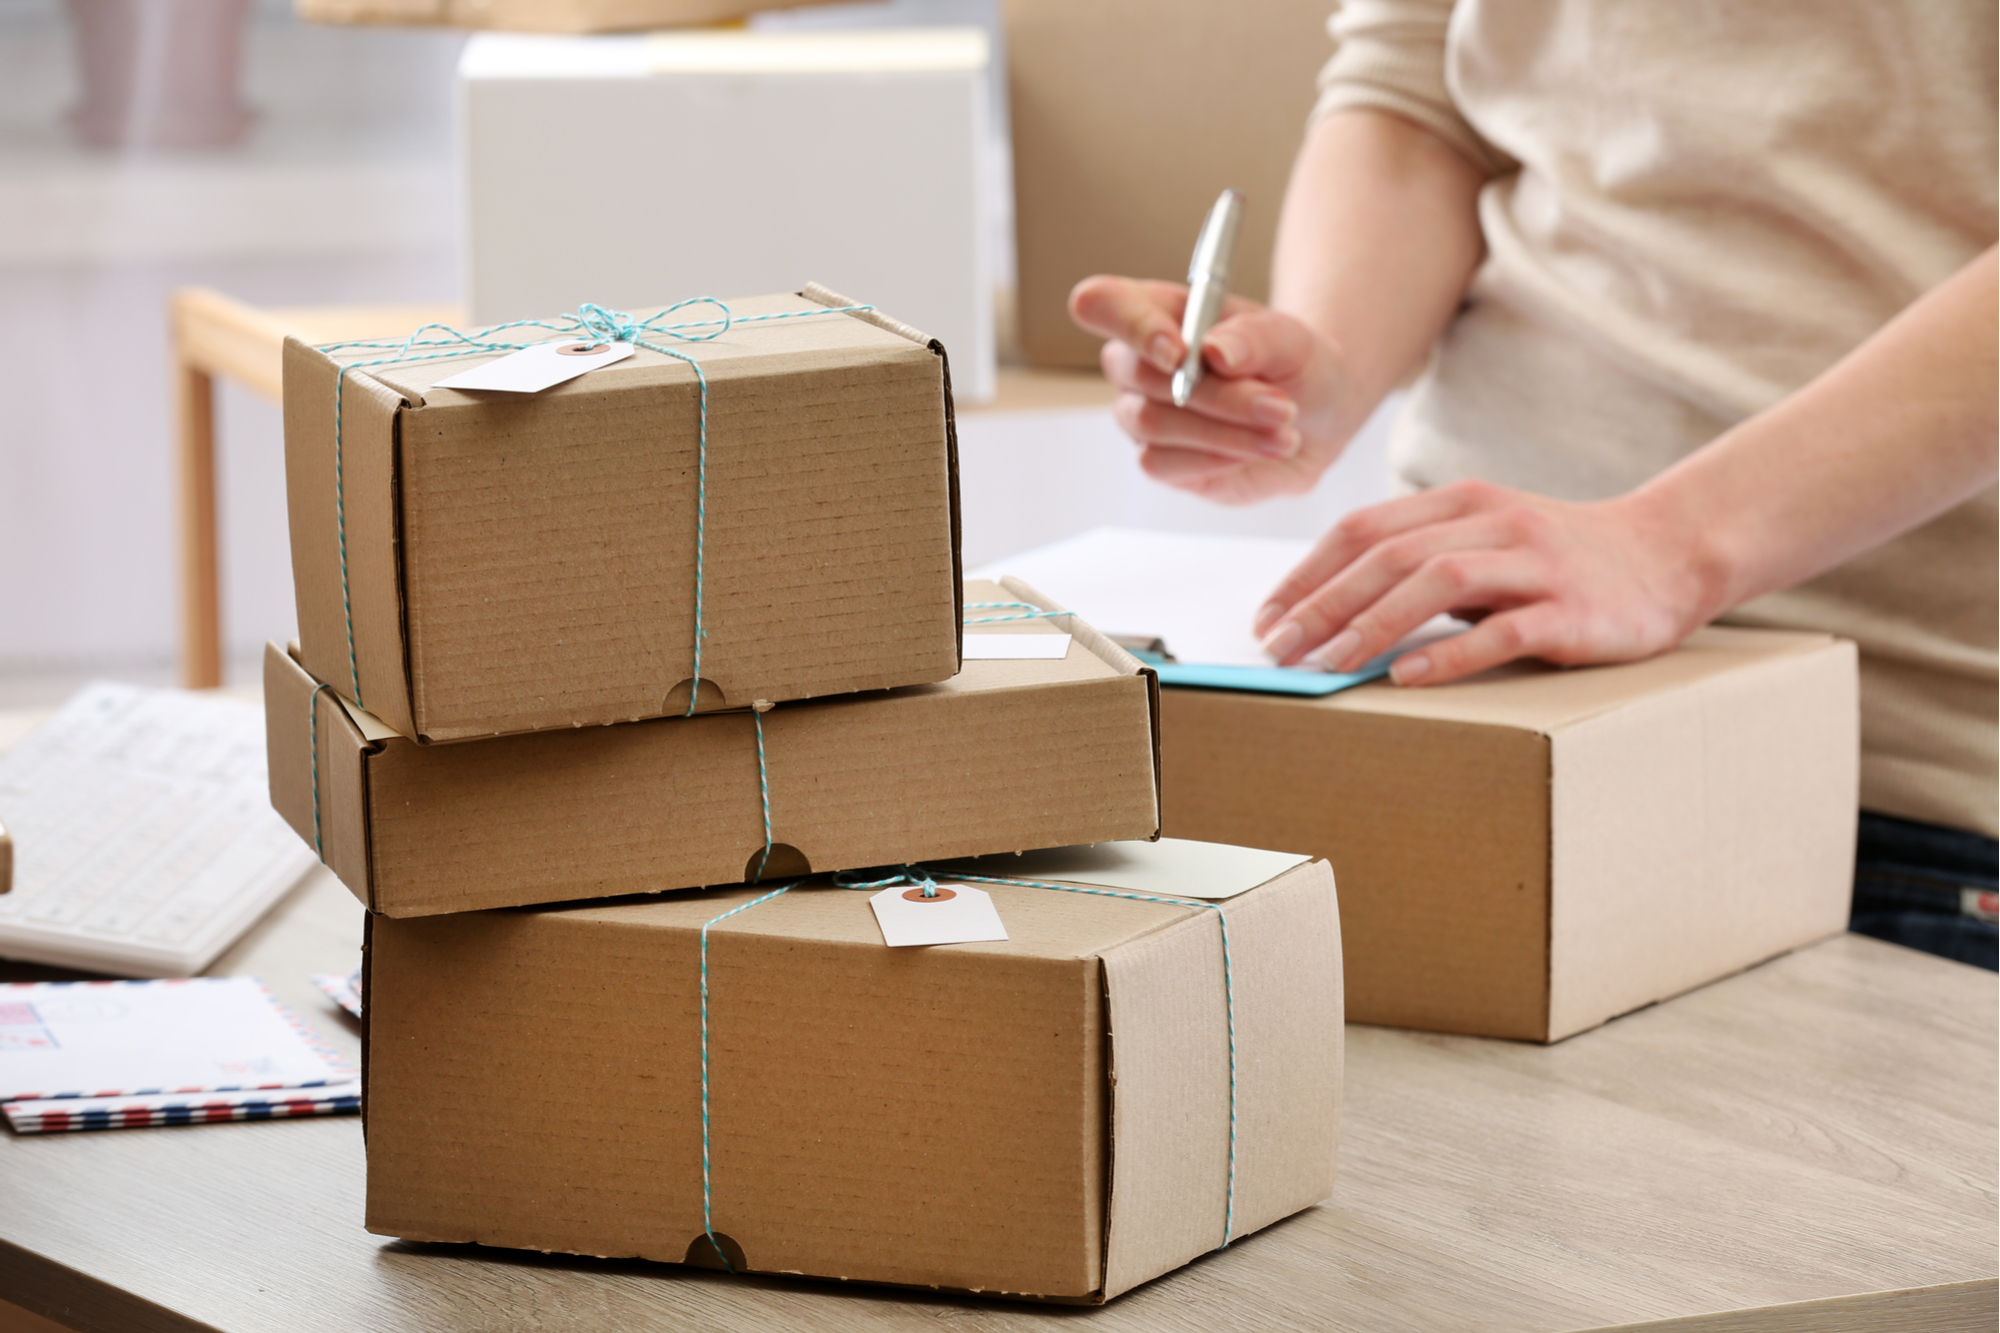 Getting Ready to Ship Some Packages as Gifts